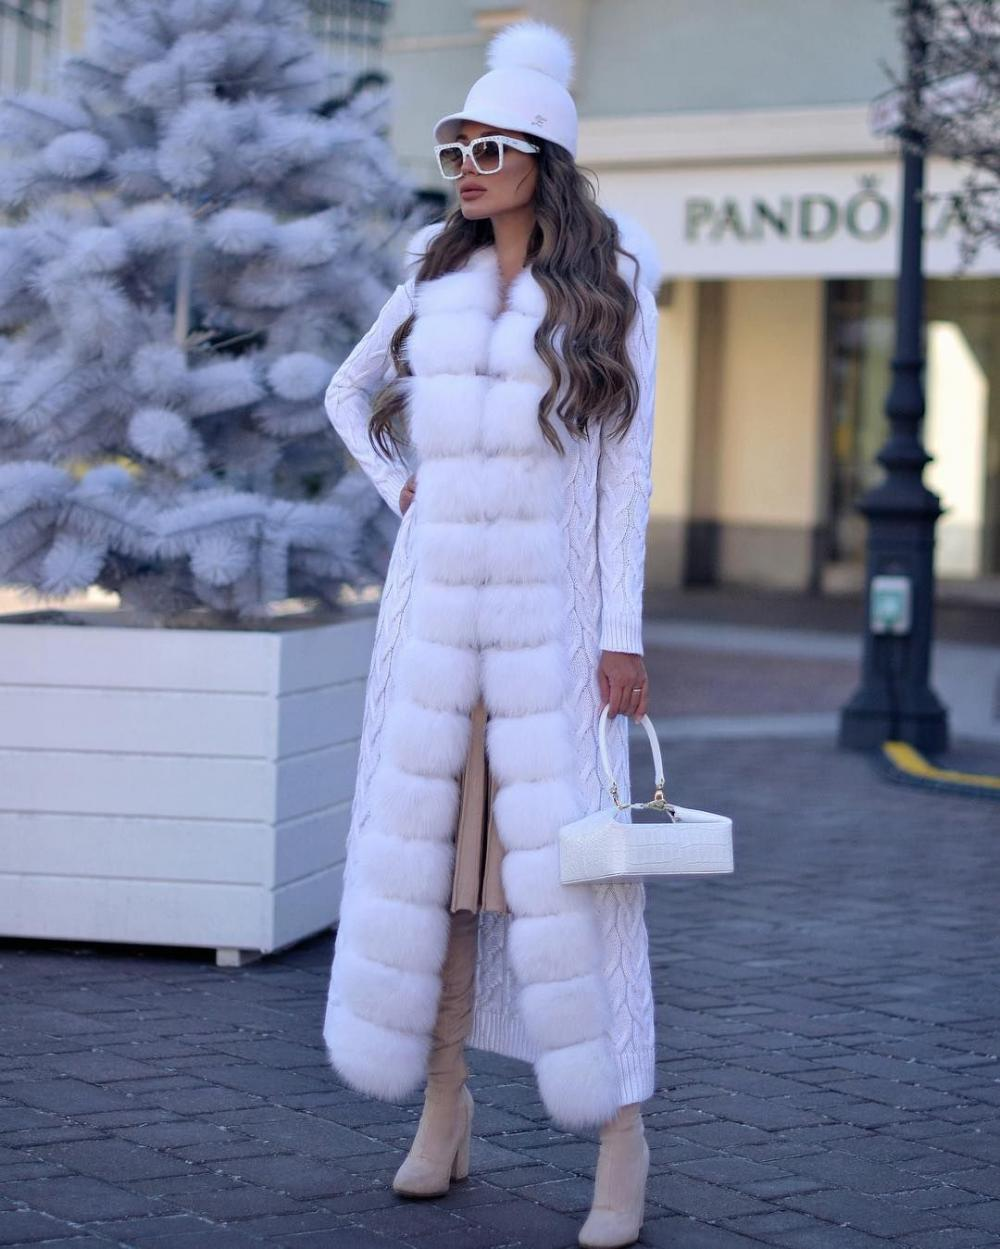 White color always wins for a fashionable winter outfit